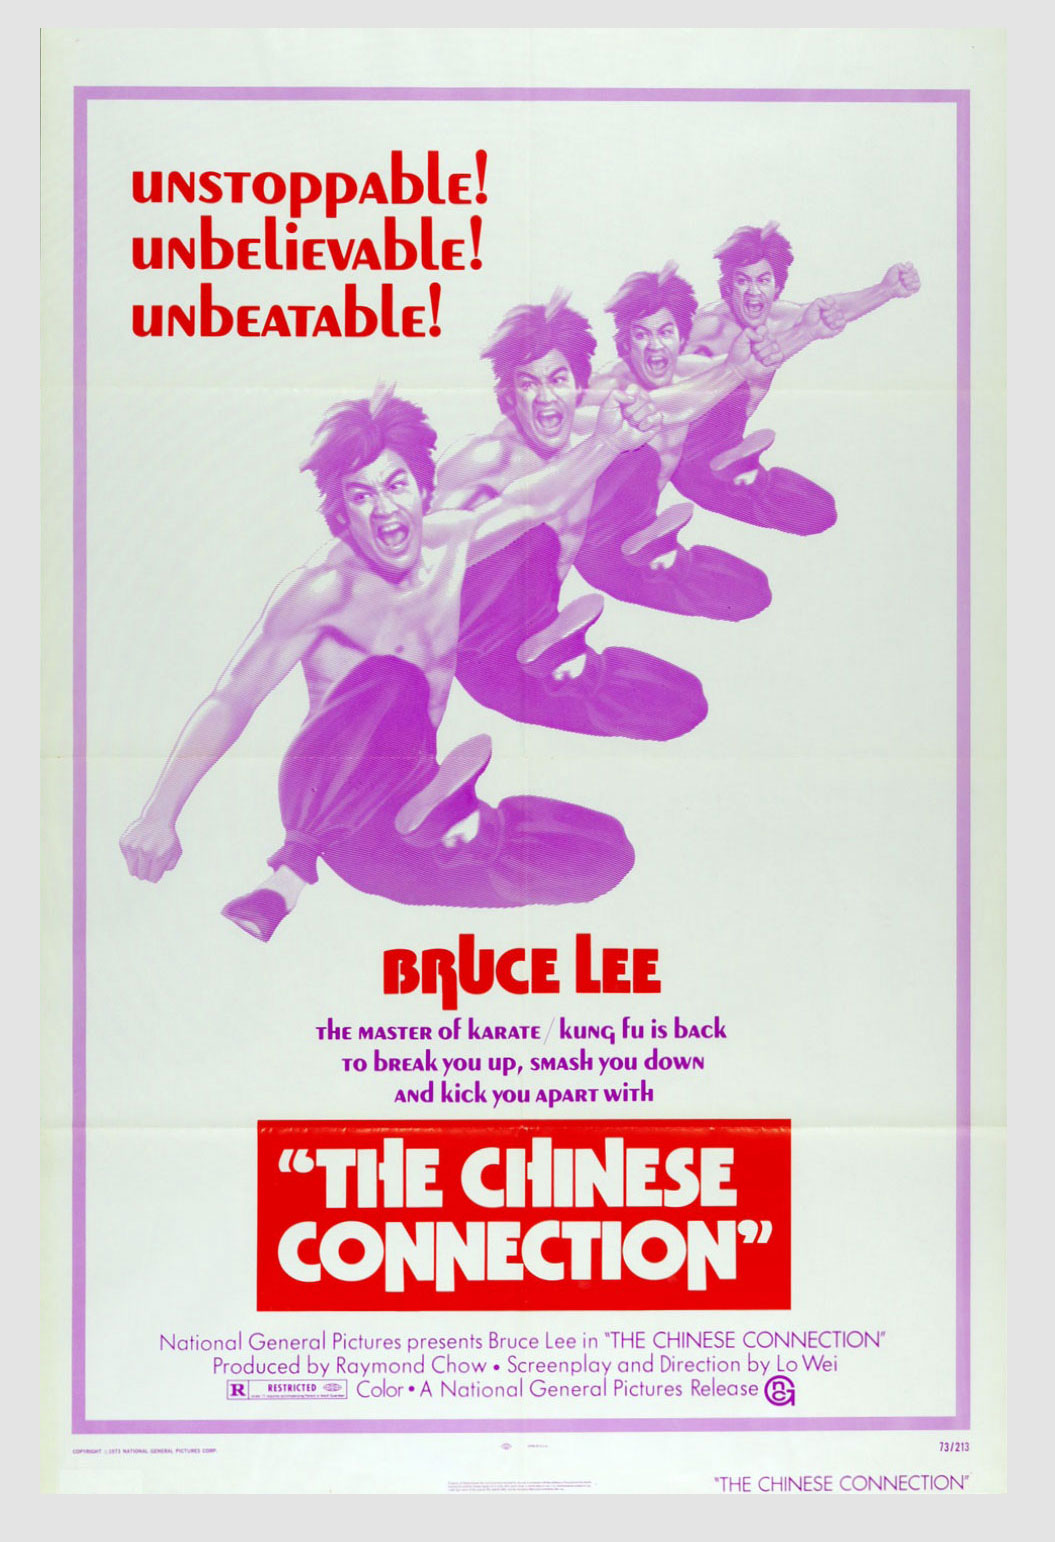 Bruce Lee Movie Poster The Chinese Connection 1973 24 x 41 1 sheet